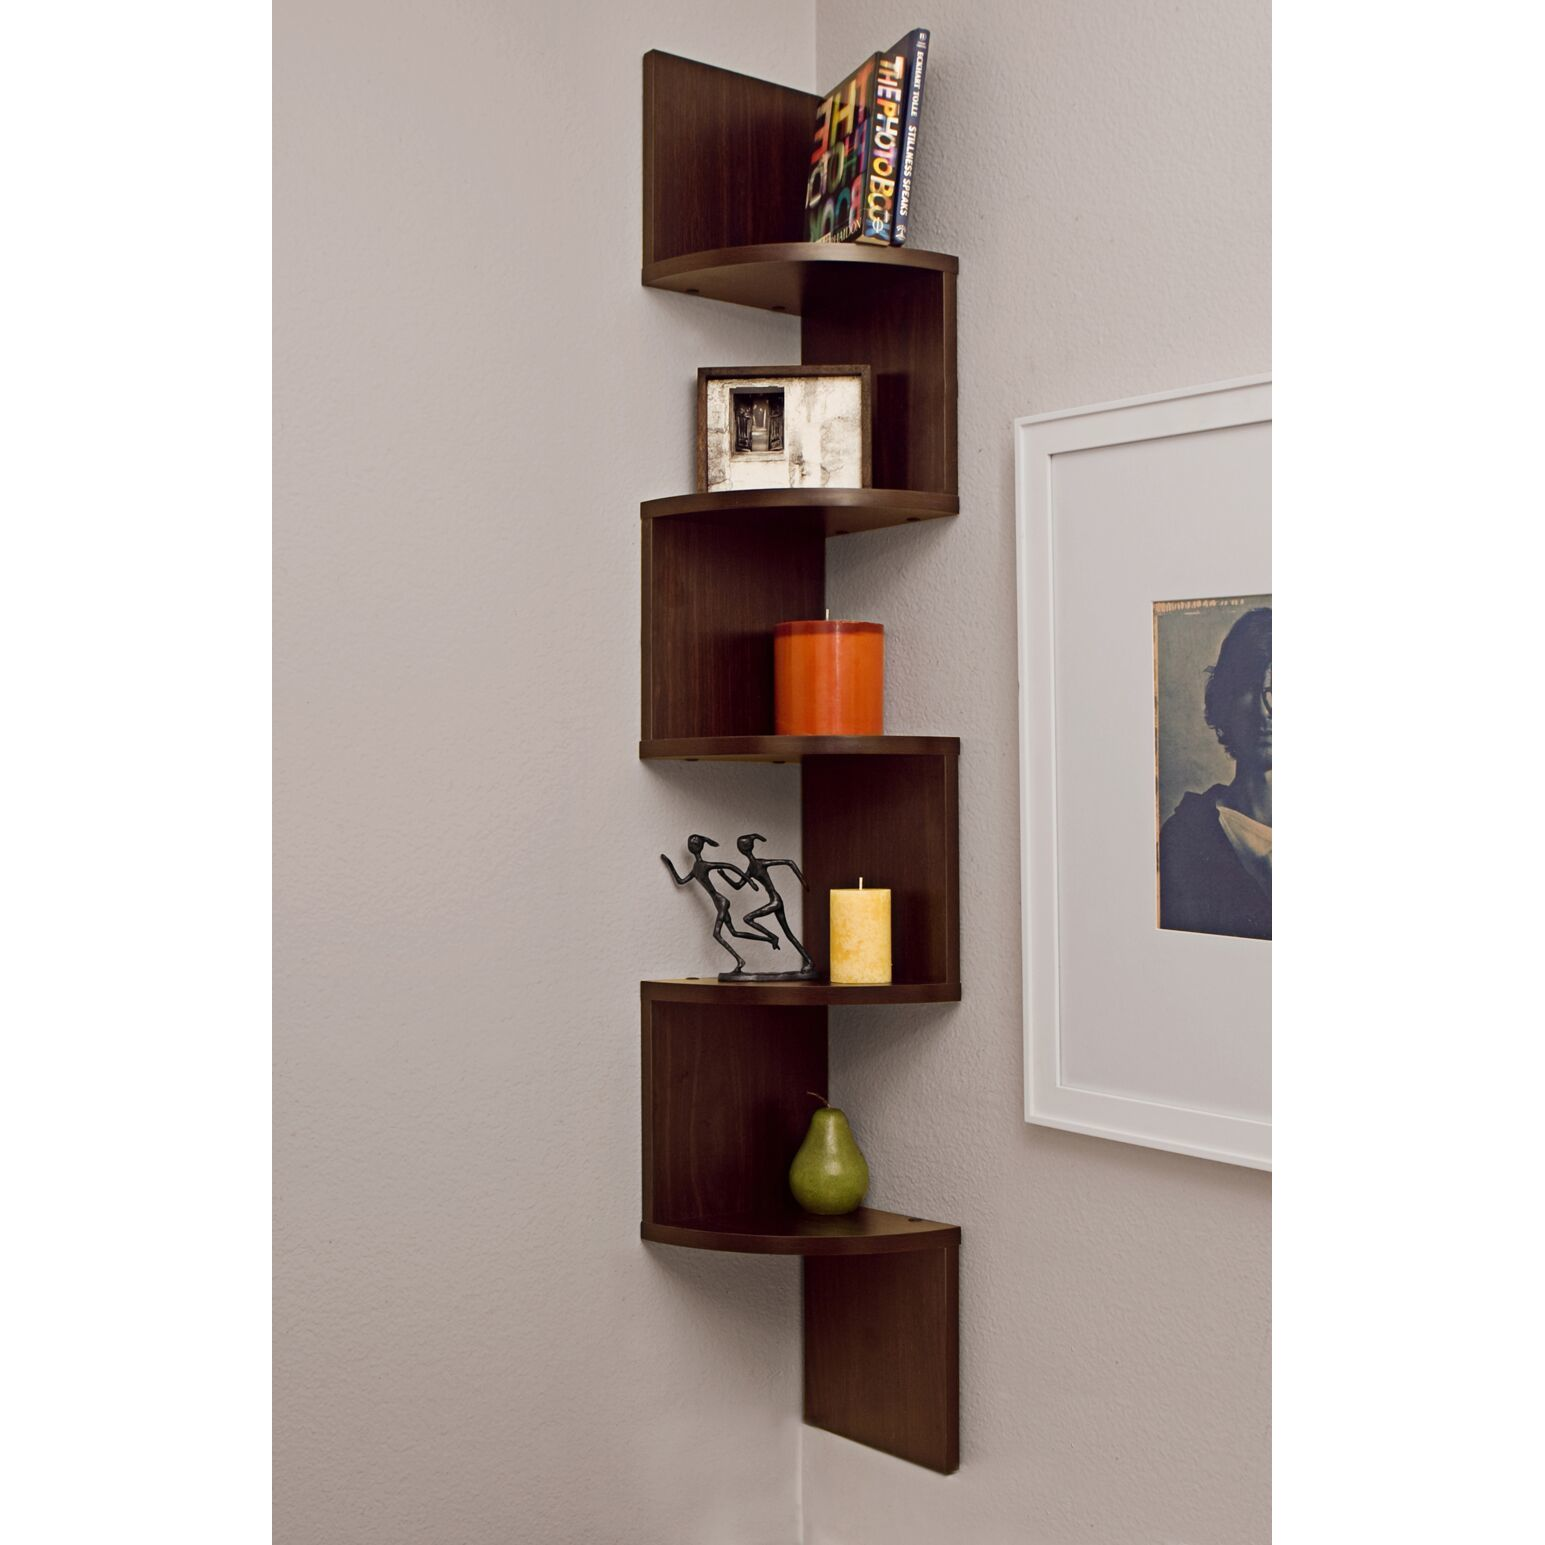 veneer corner wall mount shelf free shipping orders over danya large decorative tier floating display shelving unit hidden mantel brackets bearing customs office wooden bathroom